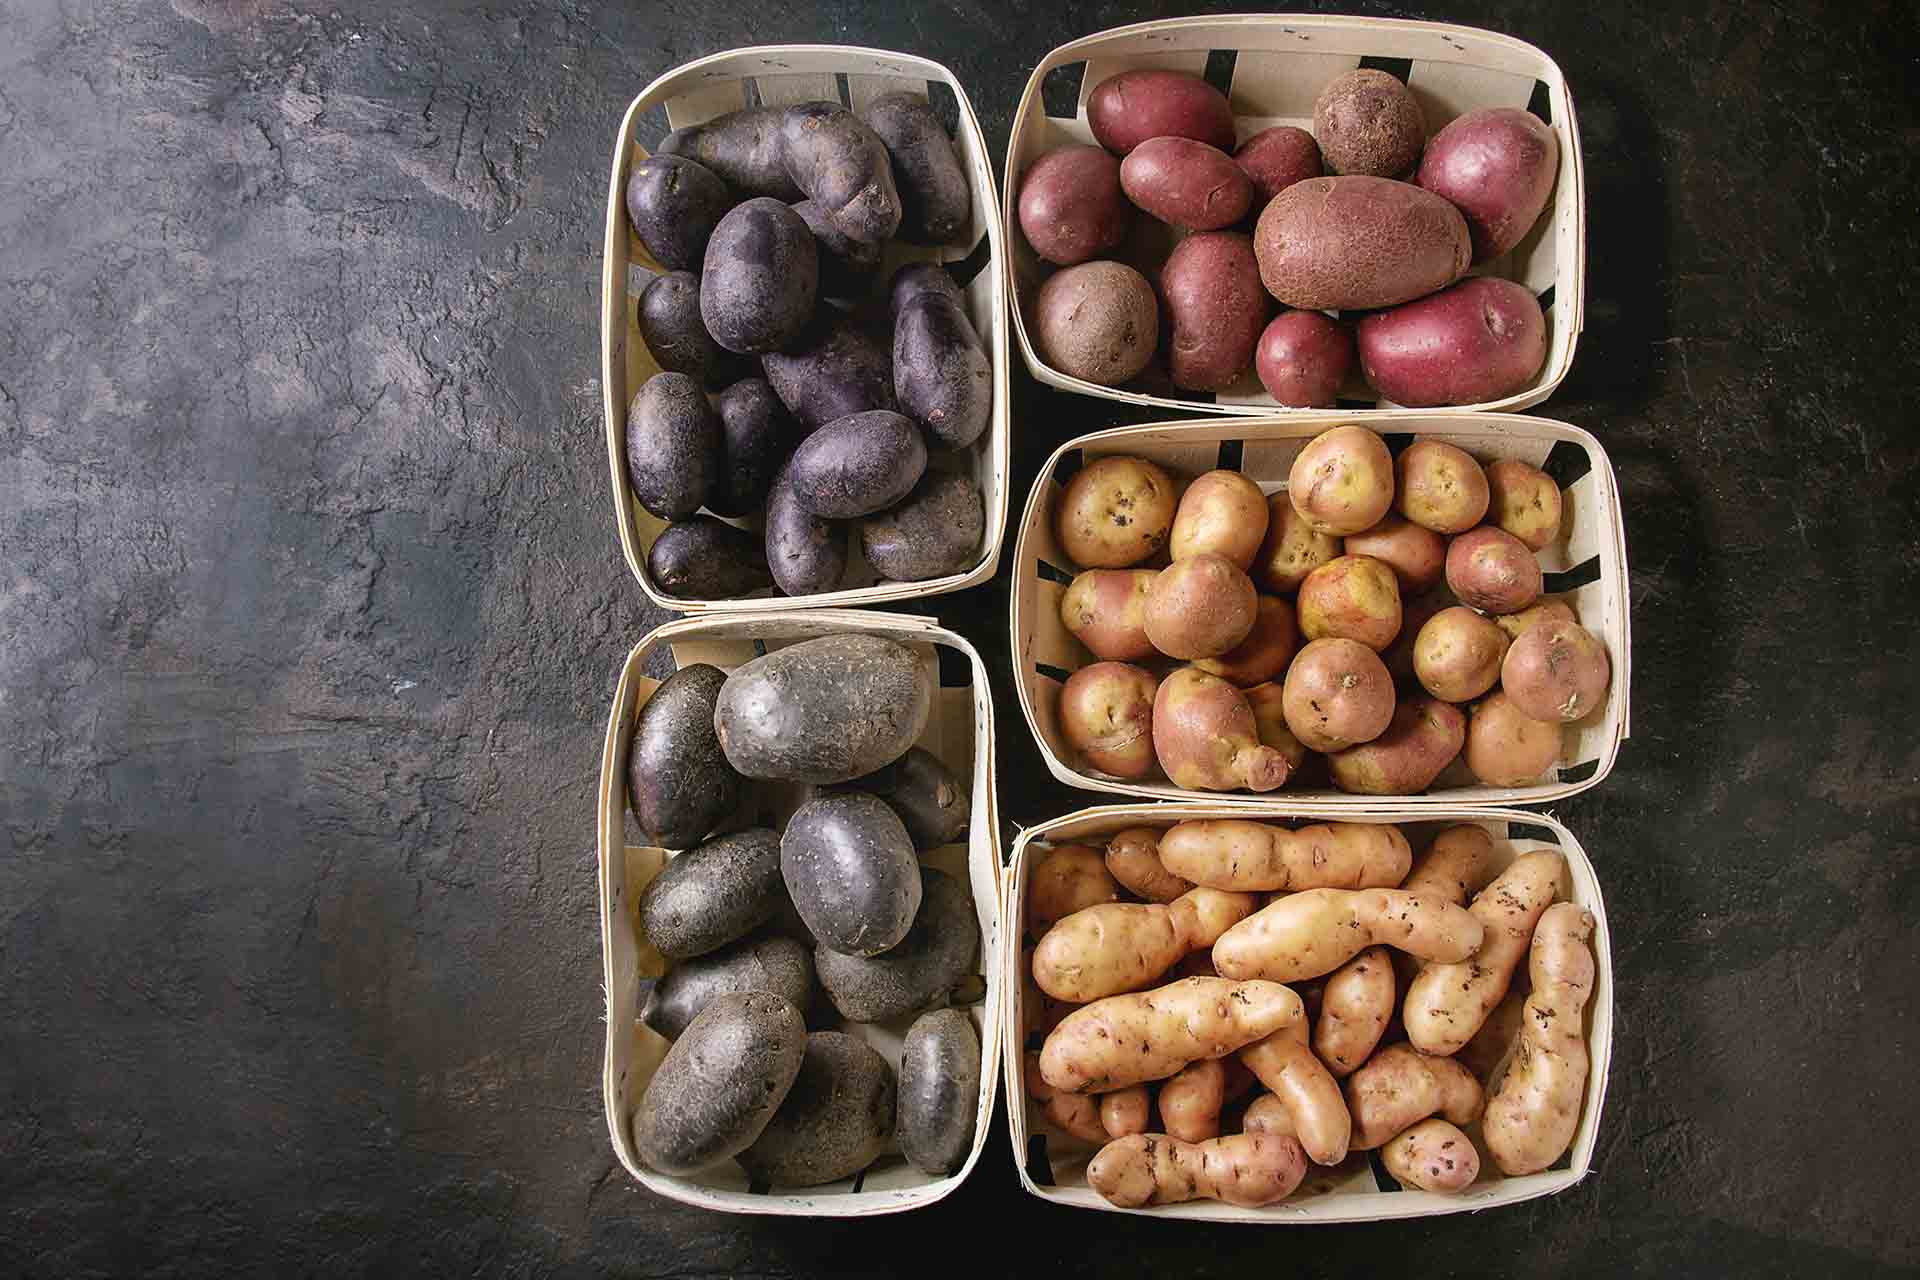 Variety of raw uncooked organic potatoes different kind and colors red, yellow, purple in market baskets over dark texture background.